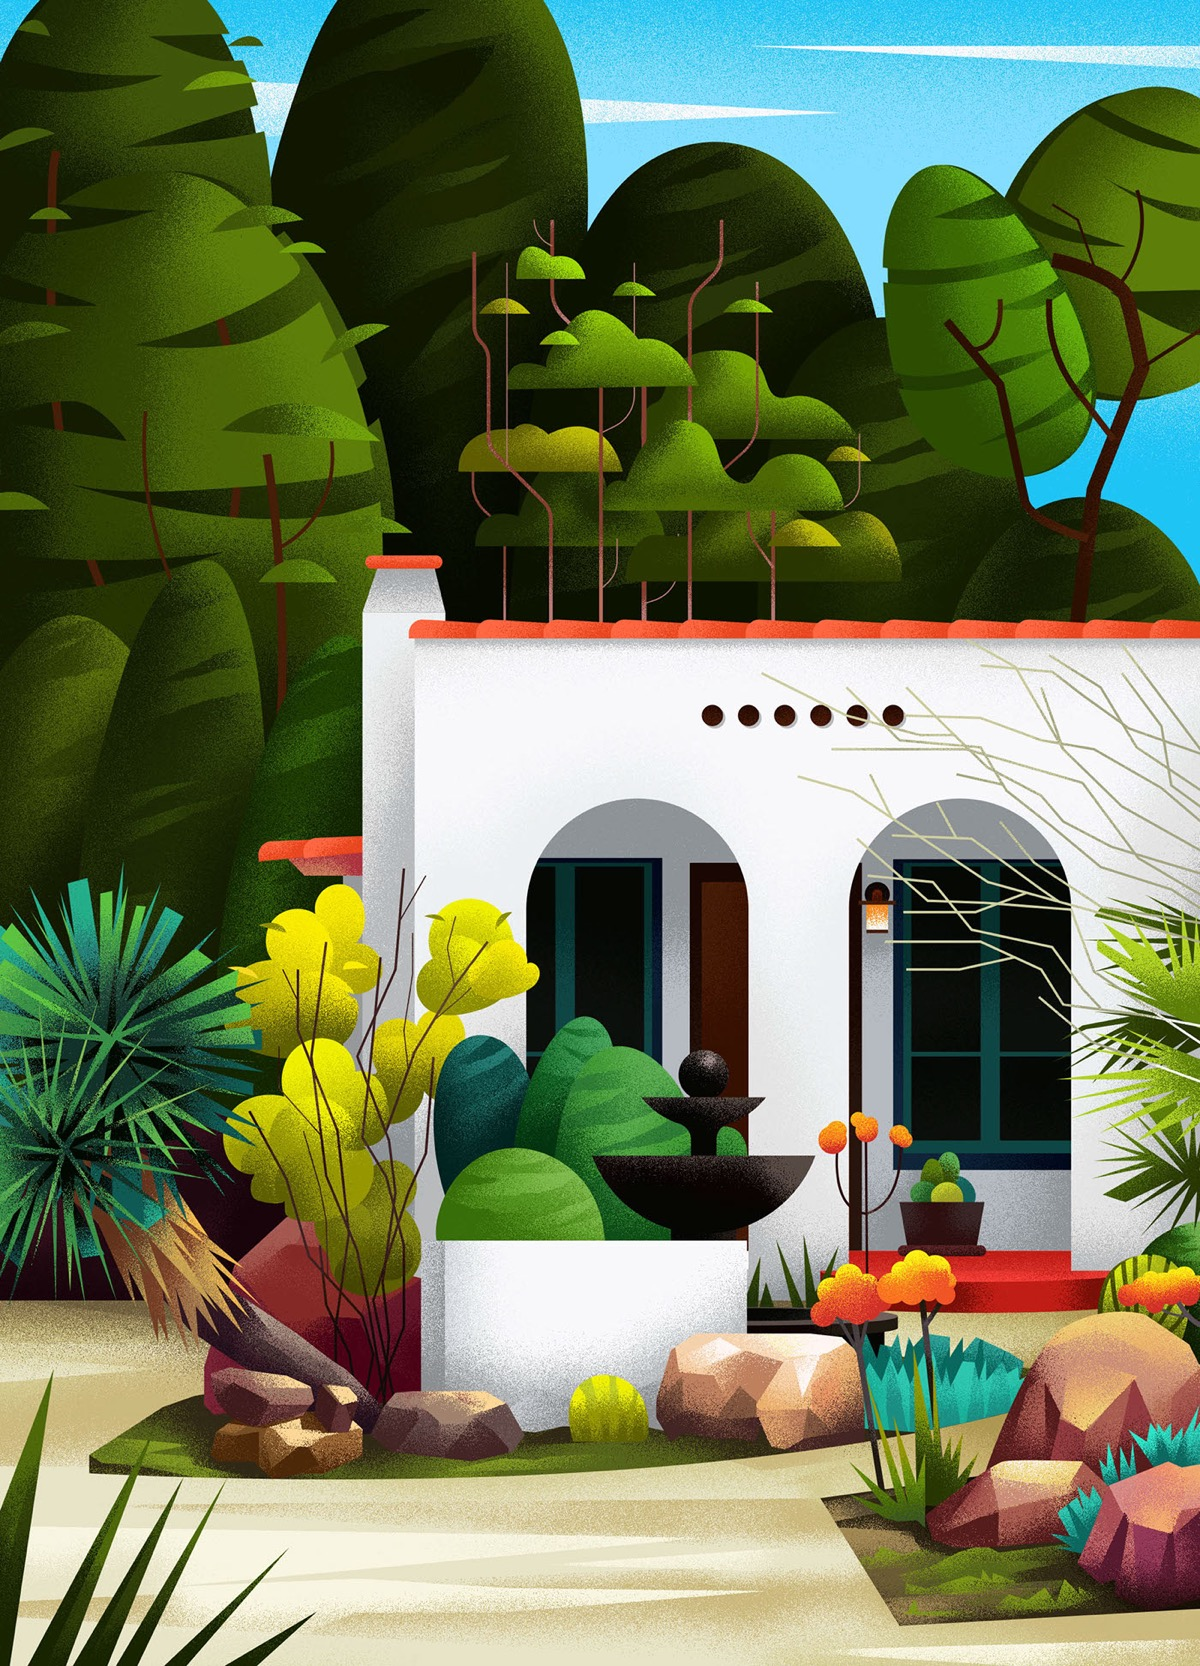 Captivating Architectural Illustrations Of Homes Around The World images 4